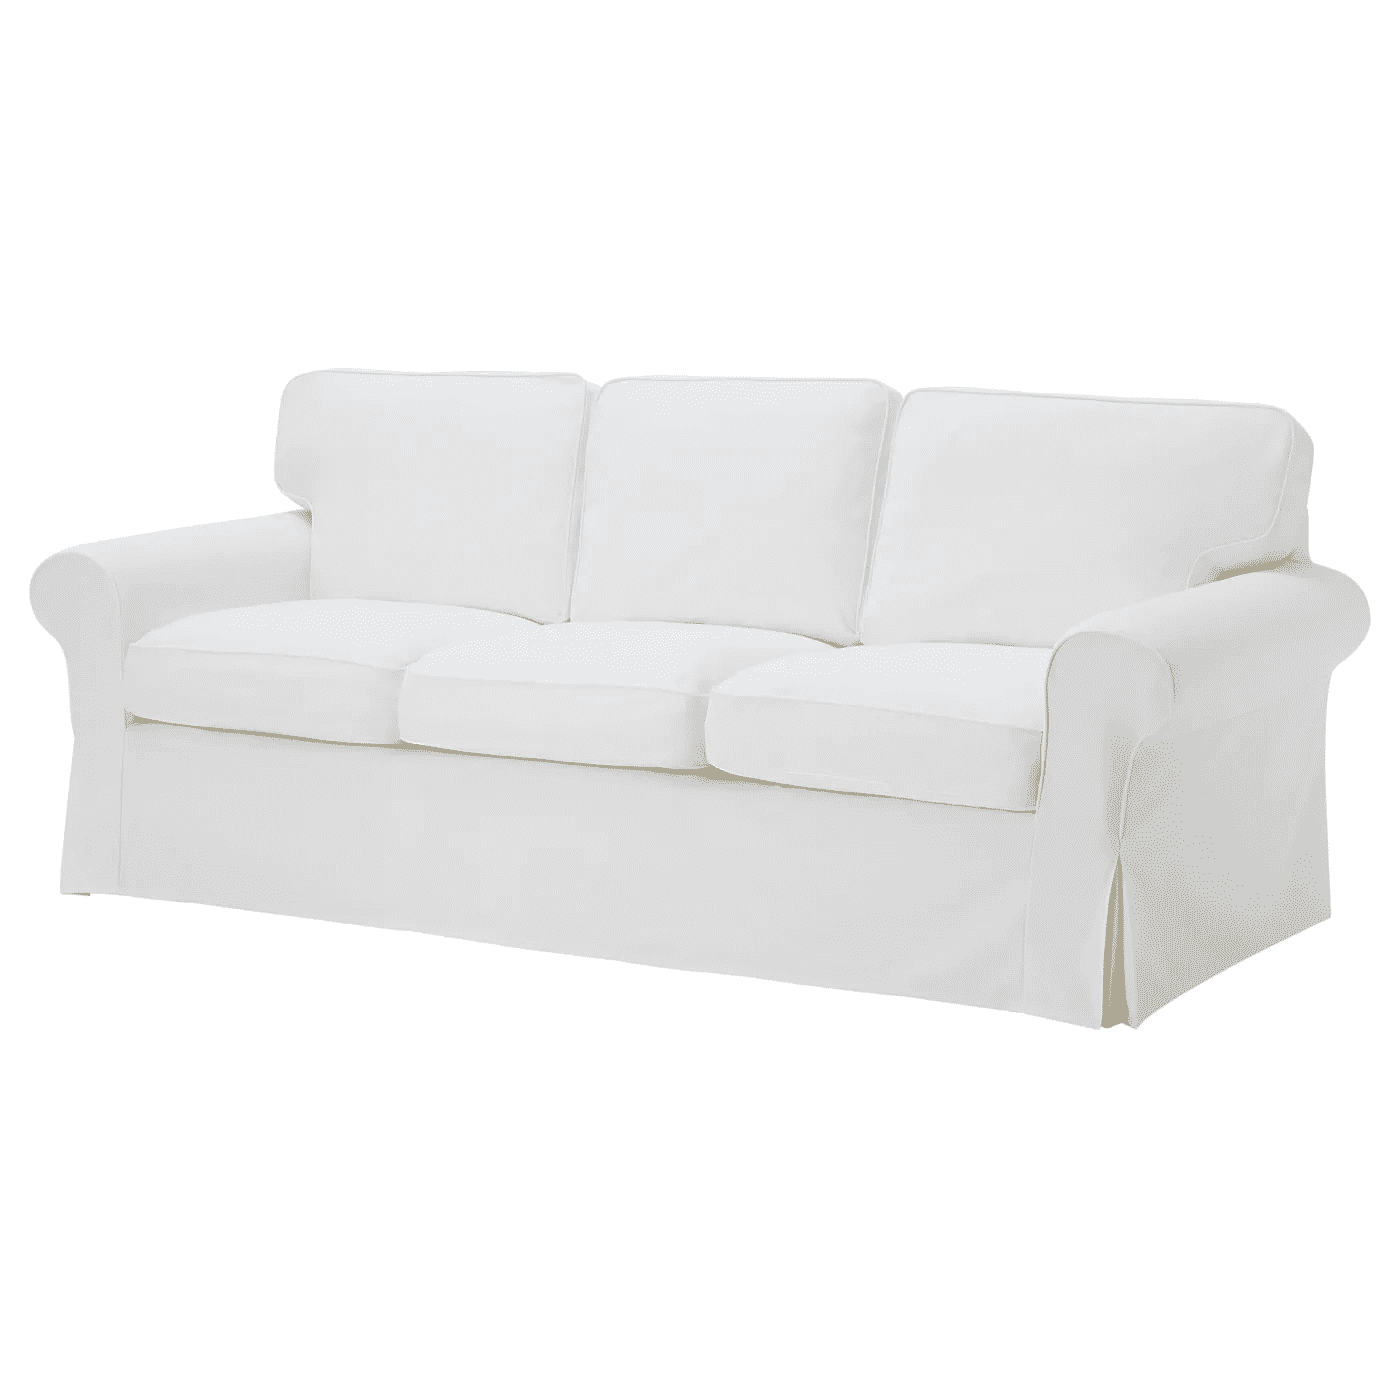 20 best ikea sofas review 2021 ikea